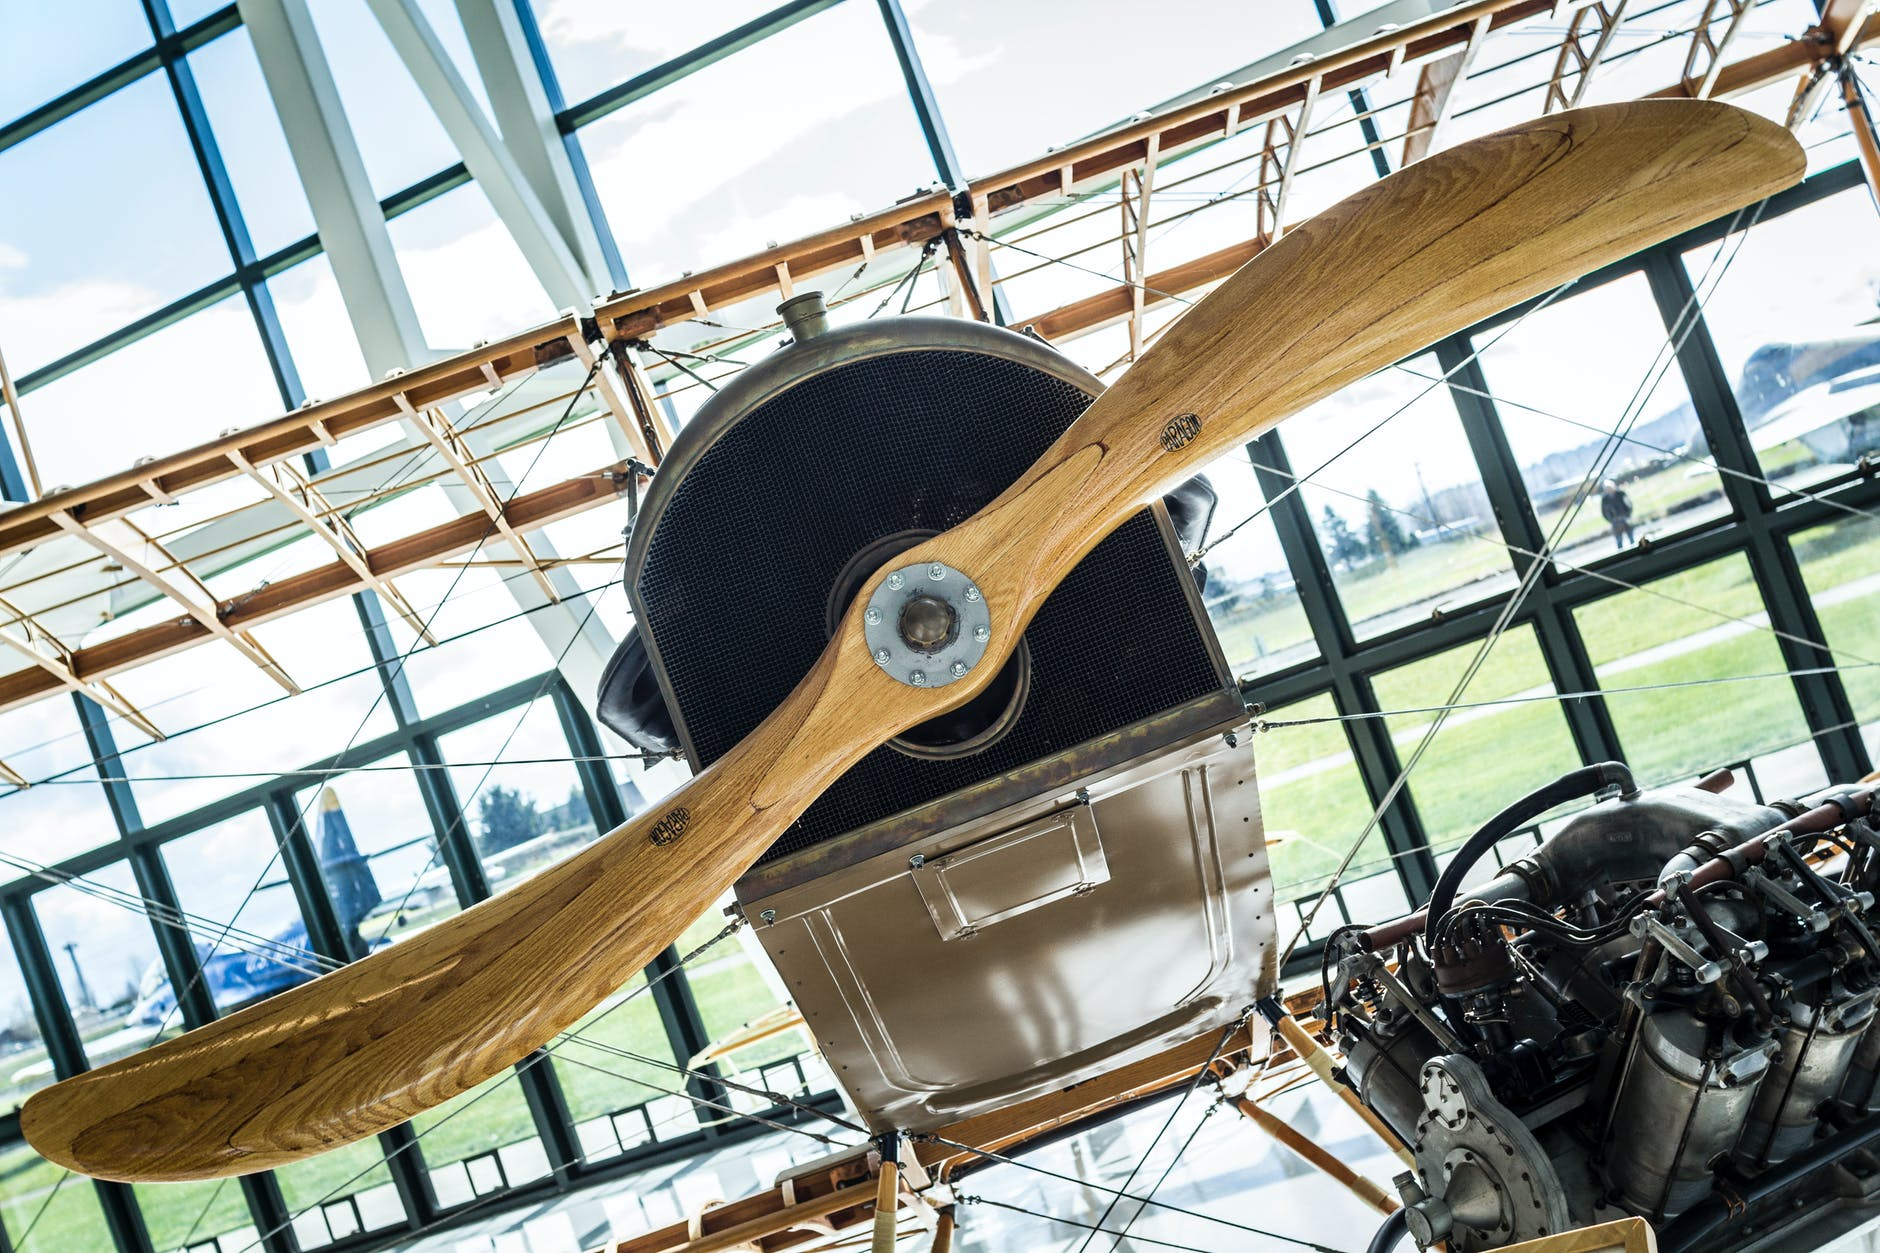 a history of the aircraft propeller Hartzell propeller places a great emphasis on innovation and engineering in order to create aircraft propeller products that deliver maximum performance for everything from light aircraft up to regional airliners.